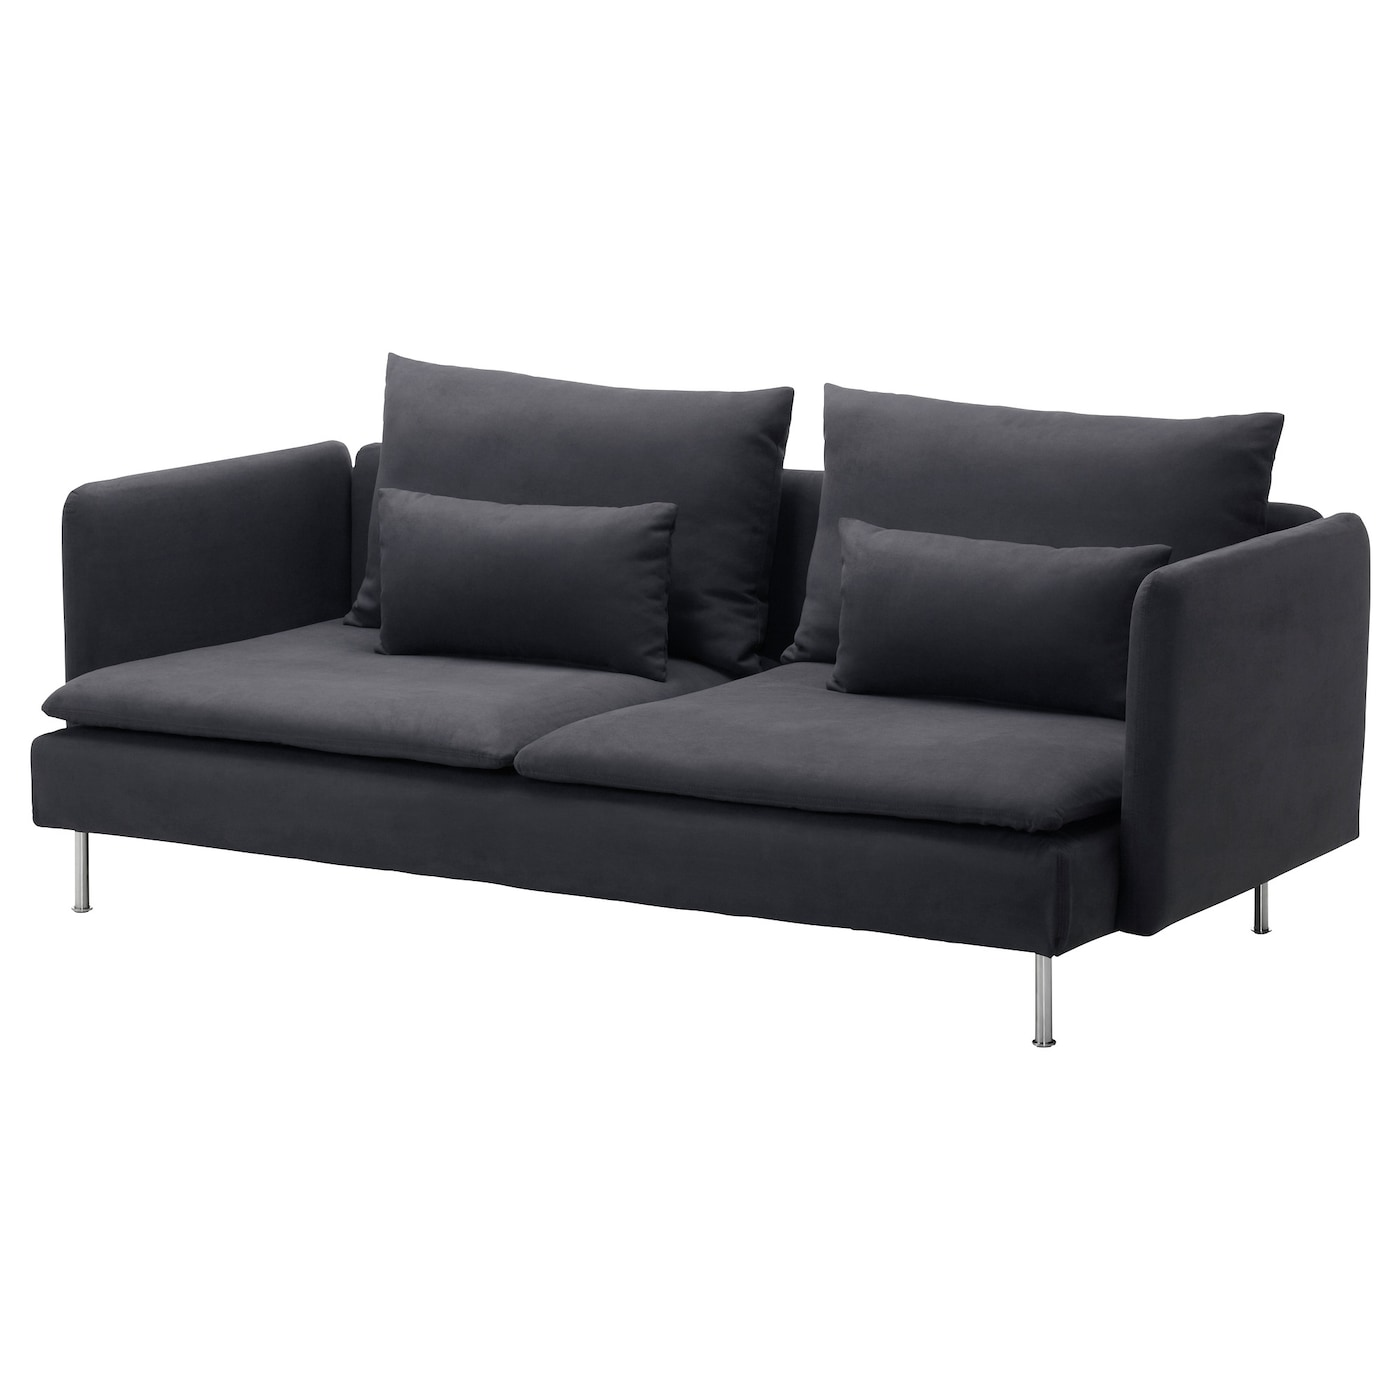 black furniture ikea. IKEA SDERHAMN 3seat Sofa Hardwearing Microfibre Which Is Soft And Smooth Black Furniture Ikea O